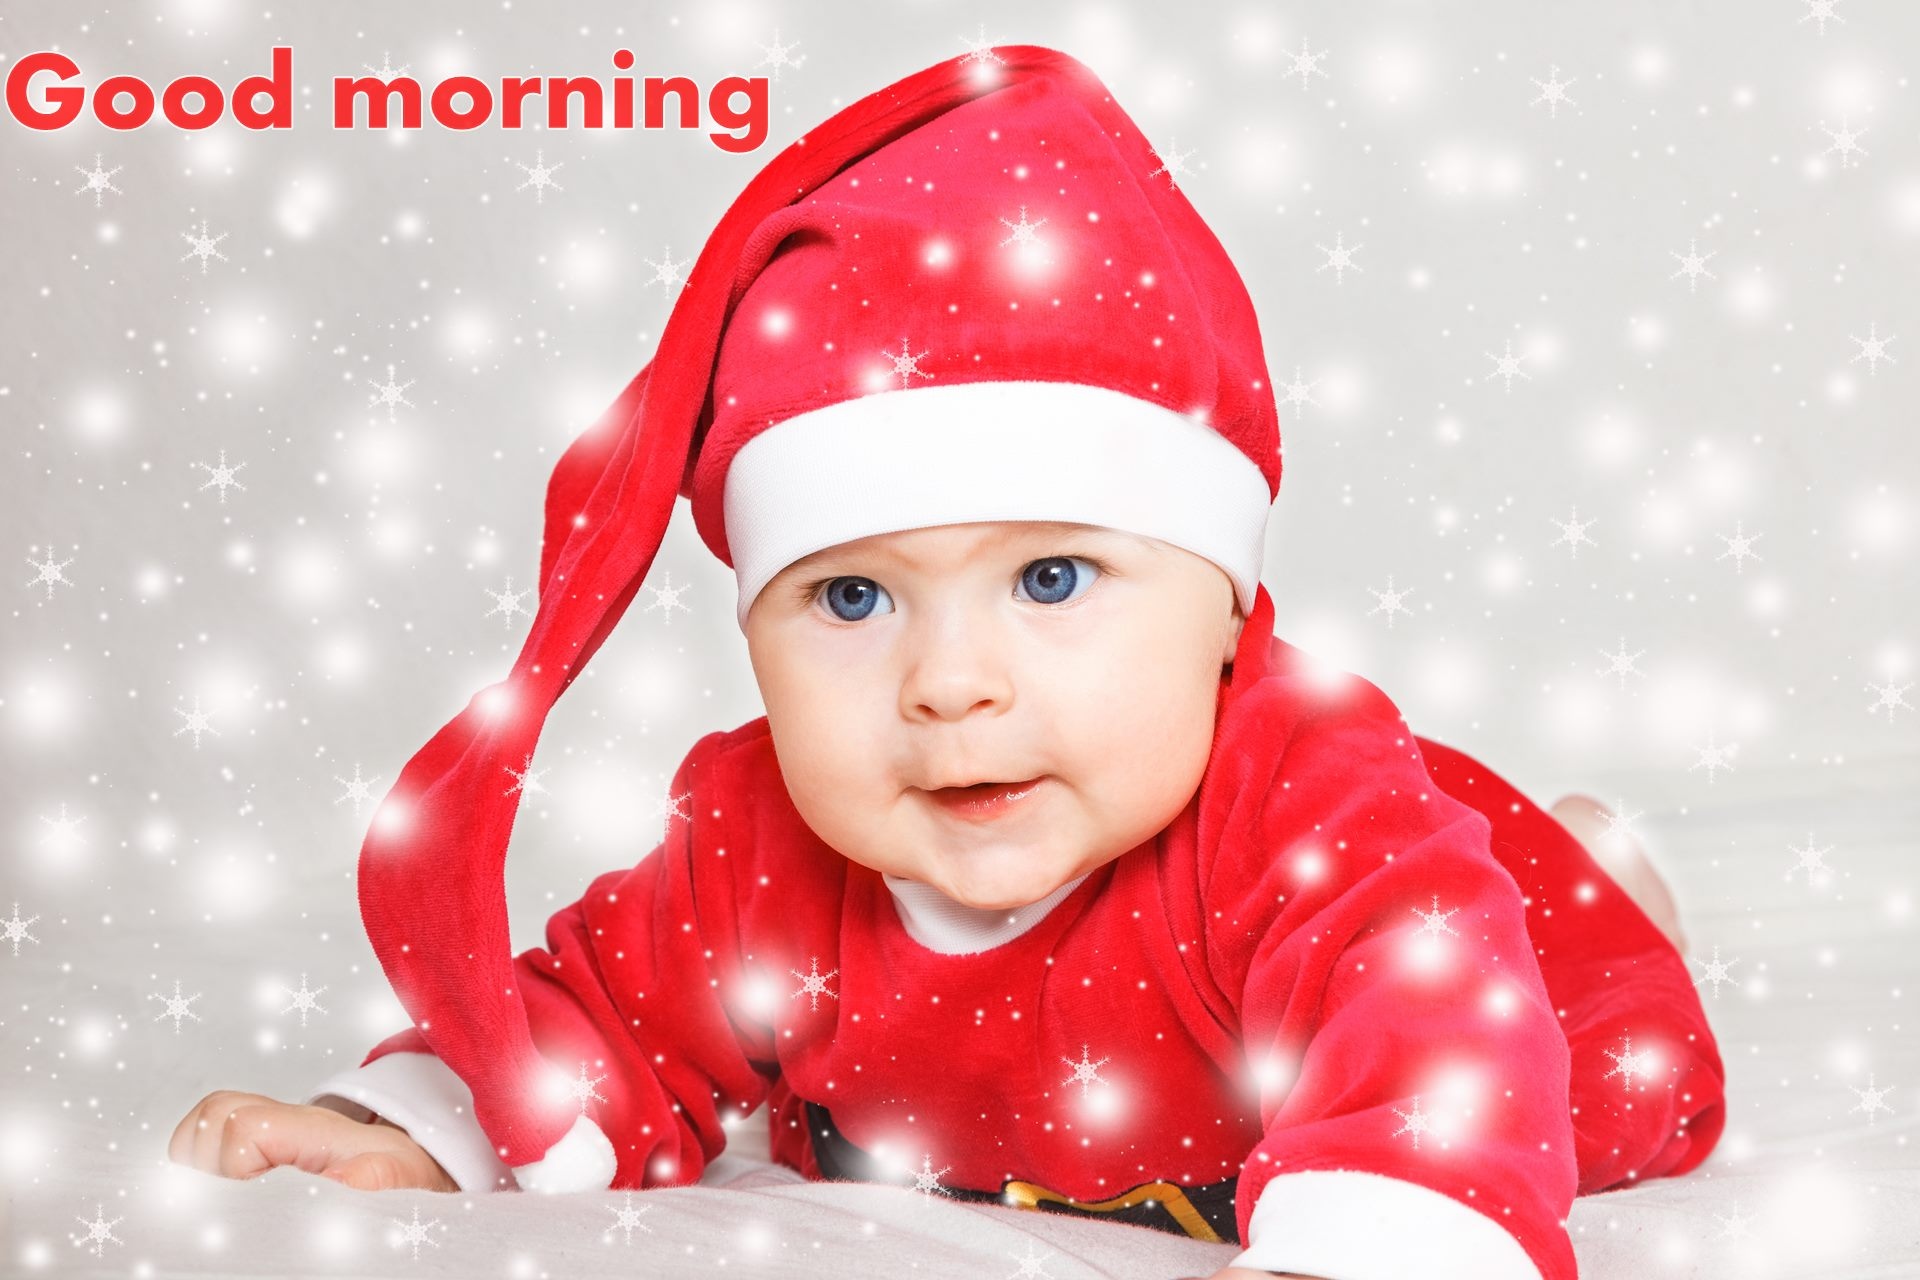 Good Morning Baby In Korean : Good morning wishes with baby pictures images page